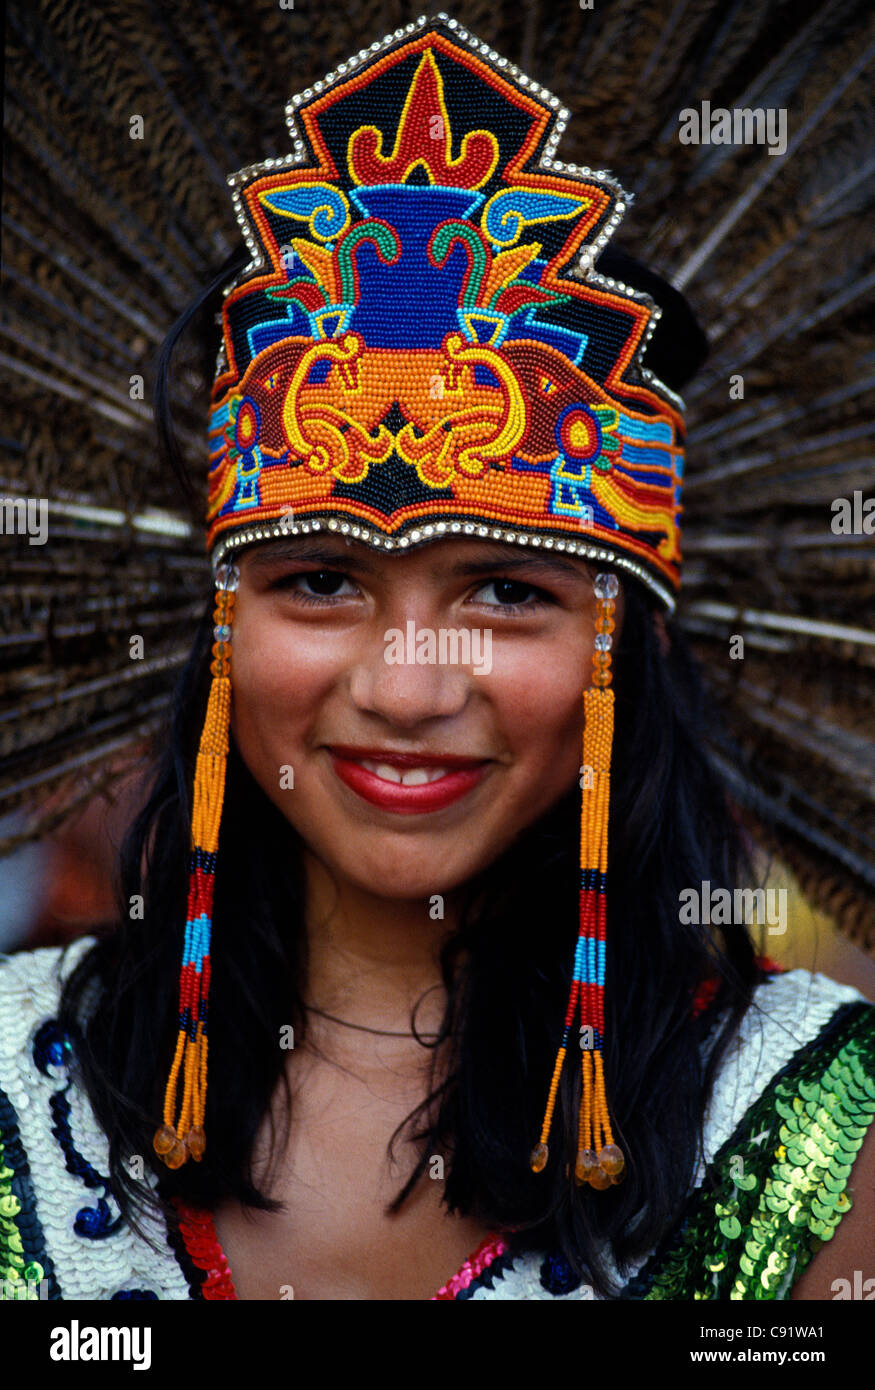 Young Mexican girl in Aztec costume during Cinco de Mayo festivities in downtown Los Angeles California - Stock Image